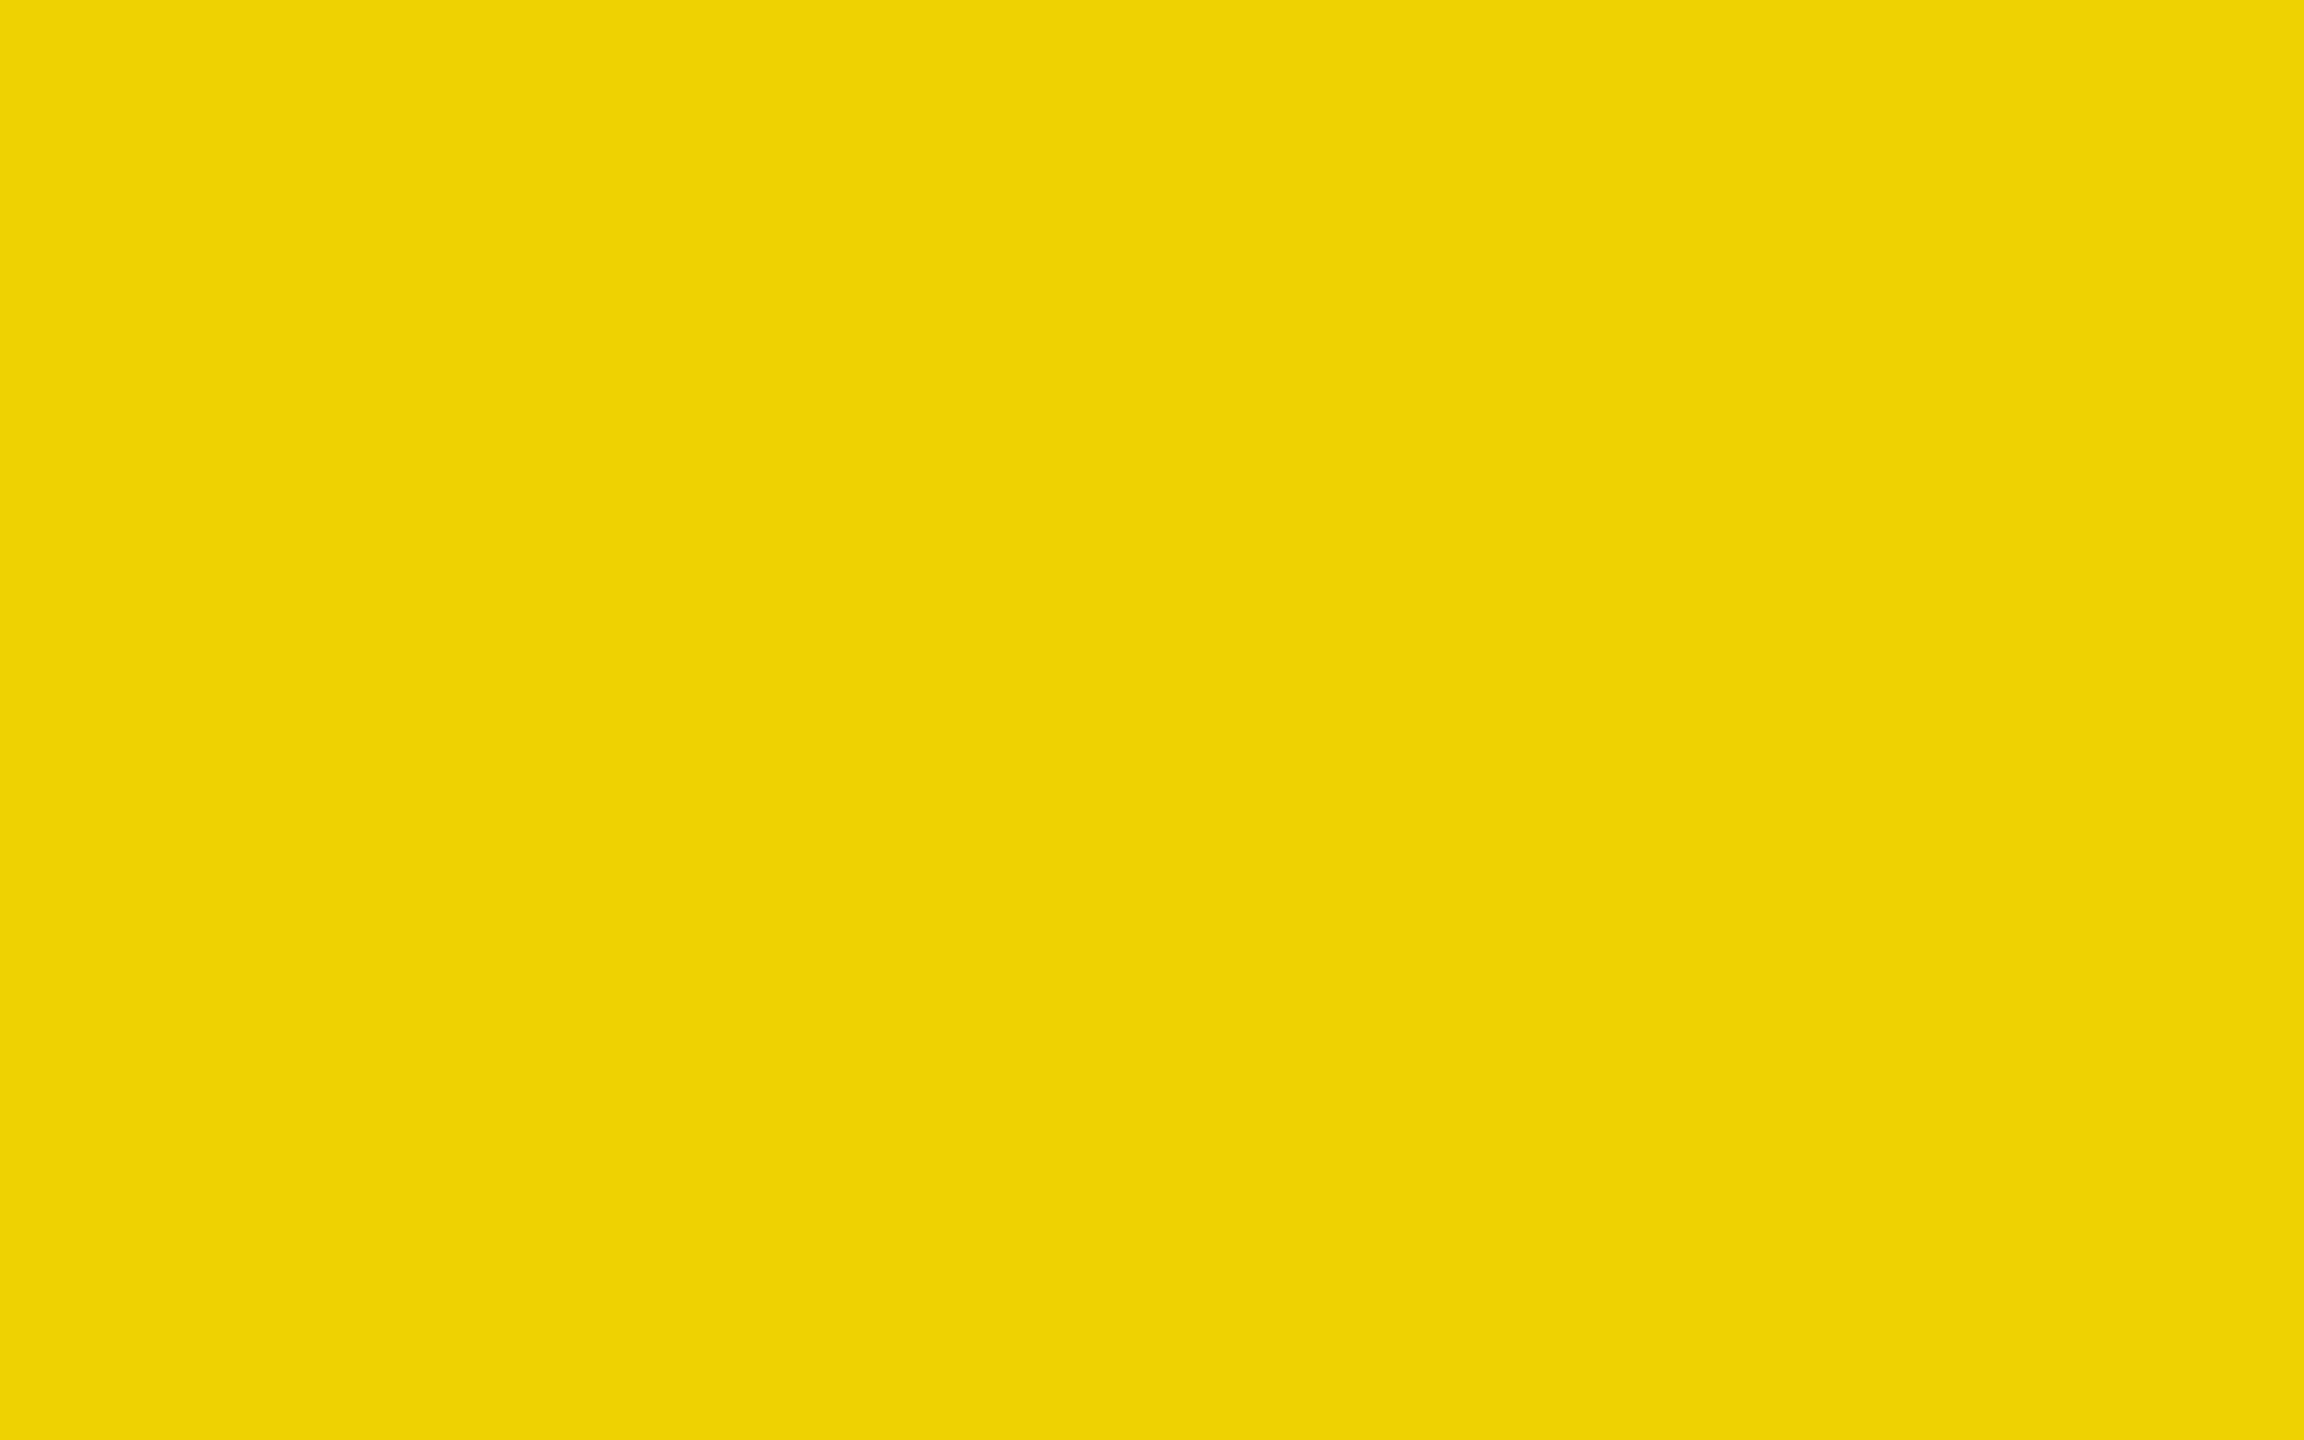 2304x1440 Safety Yellow Solid Color Background